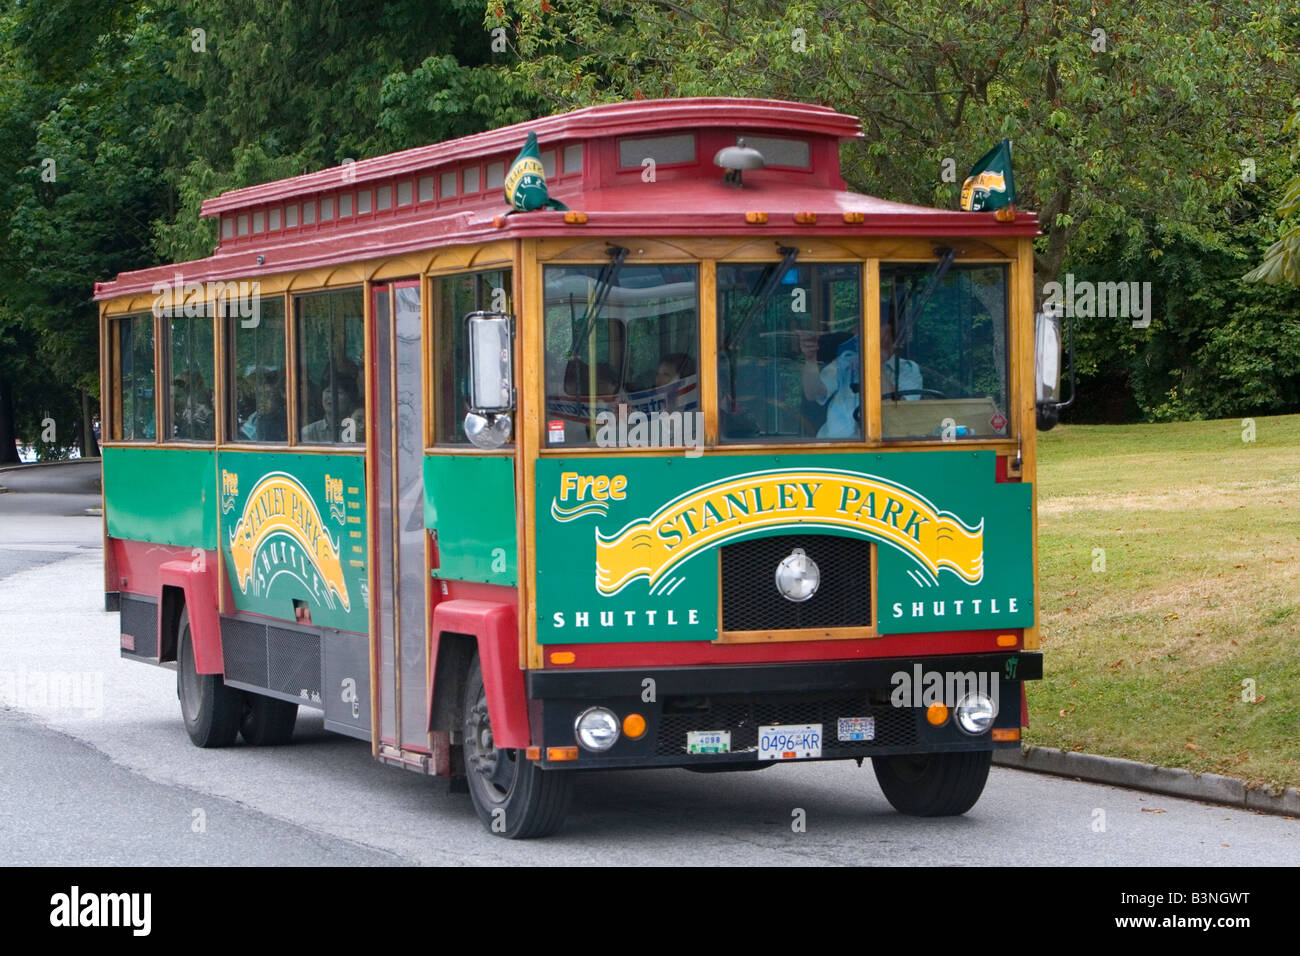 Stanley Park shuttle bus in Vancouver British Columbia Canada - Stock Image